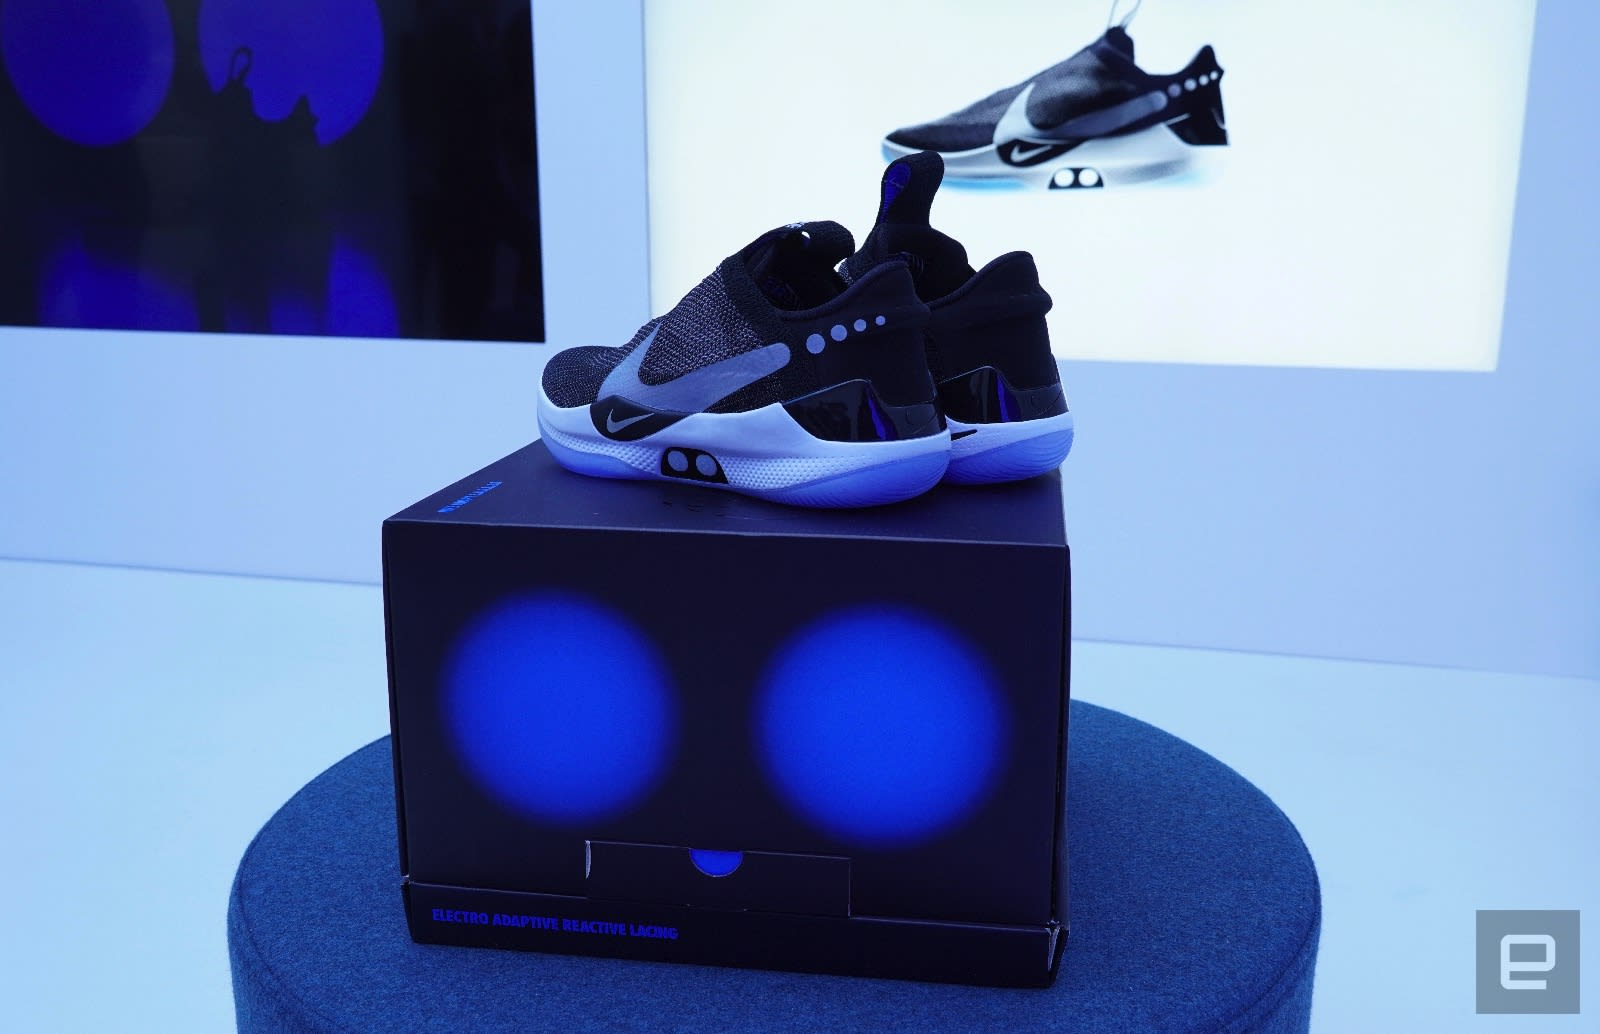 a8ed68bcb Unboxing Nike s self-lacing Adapt BB sneakers is like opening a smartphone